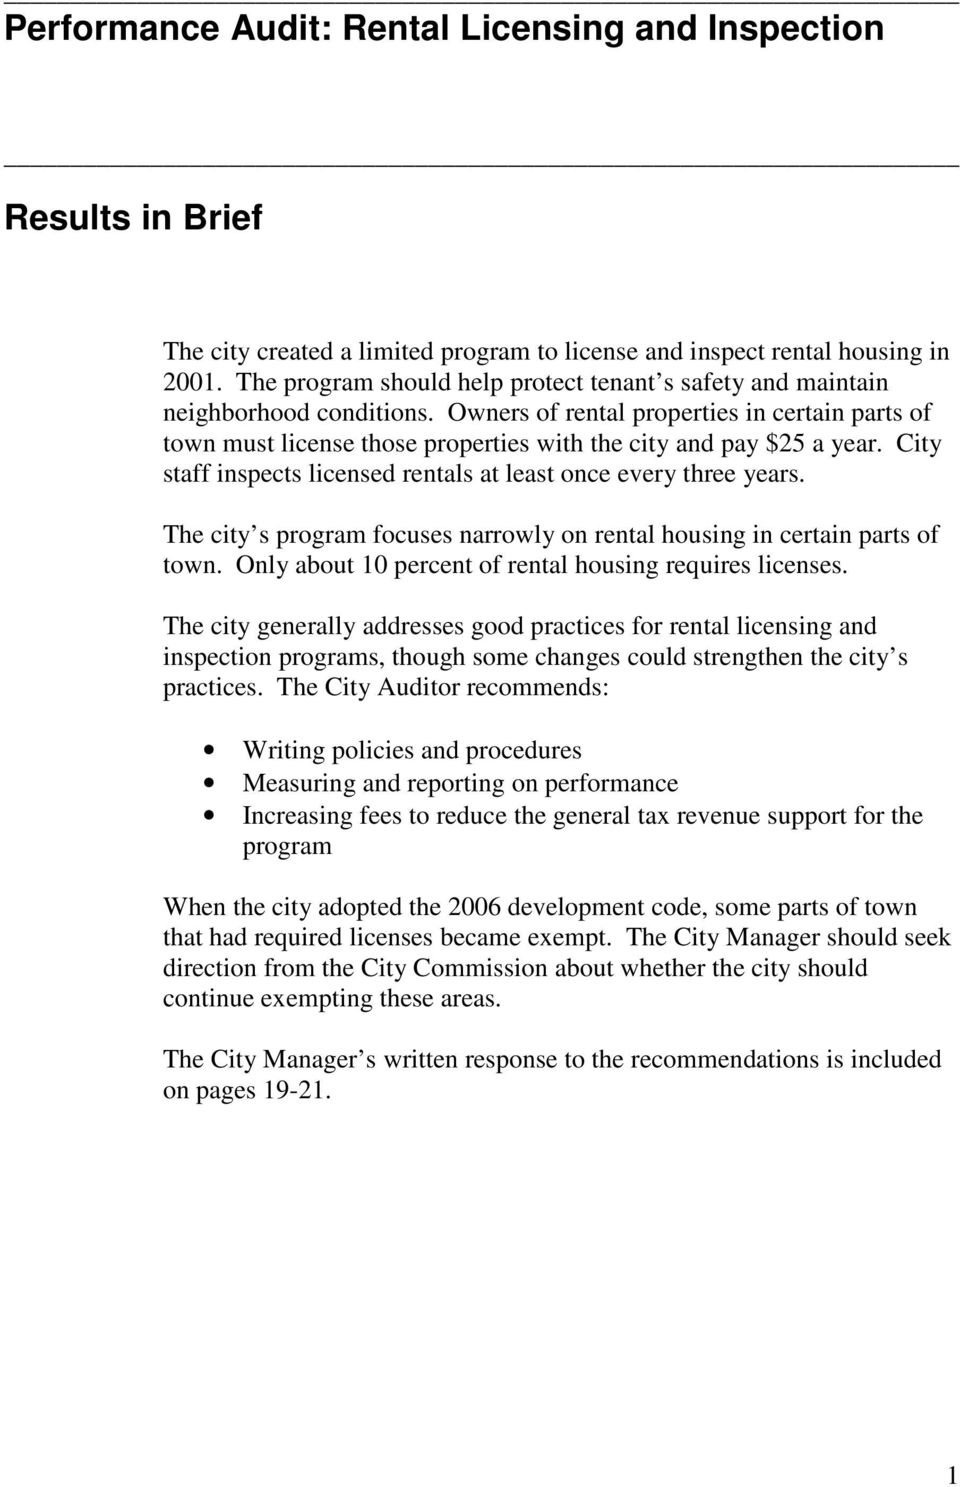 Owners of rental properties in certain parts of town must license those properties with the city and pay $25 a year. City staff inspects licensed rentals at least once every three years.